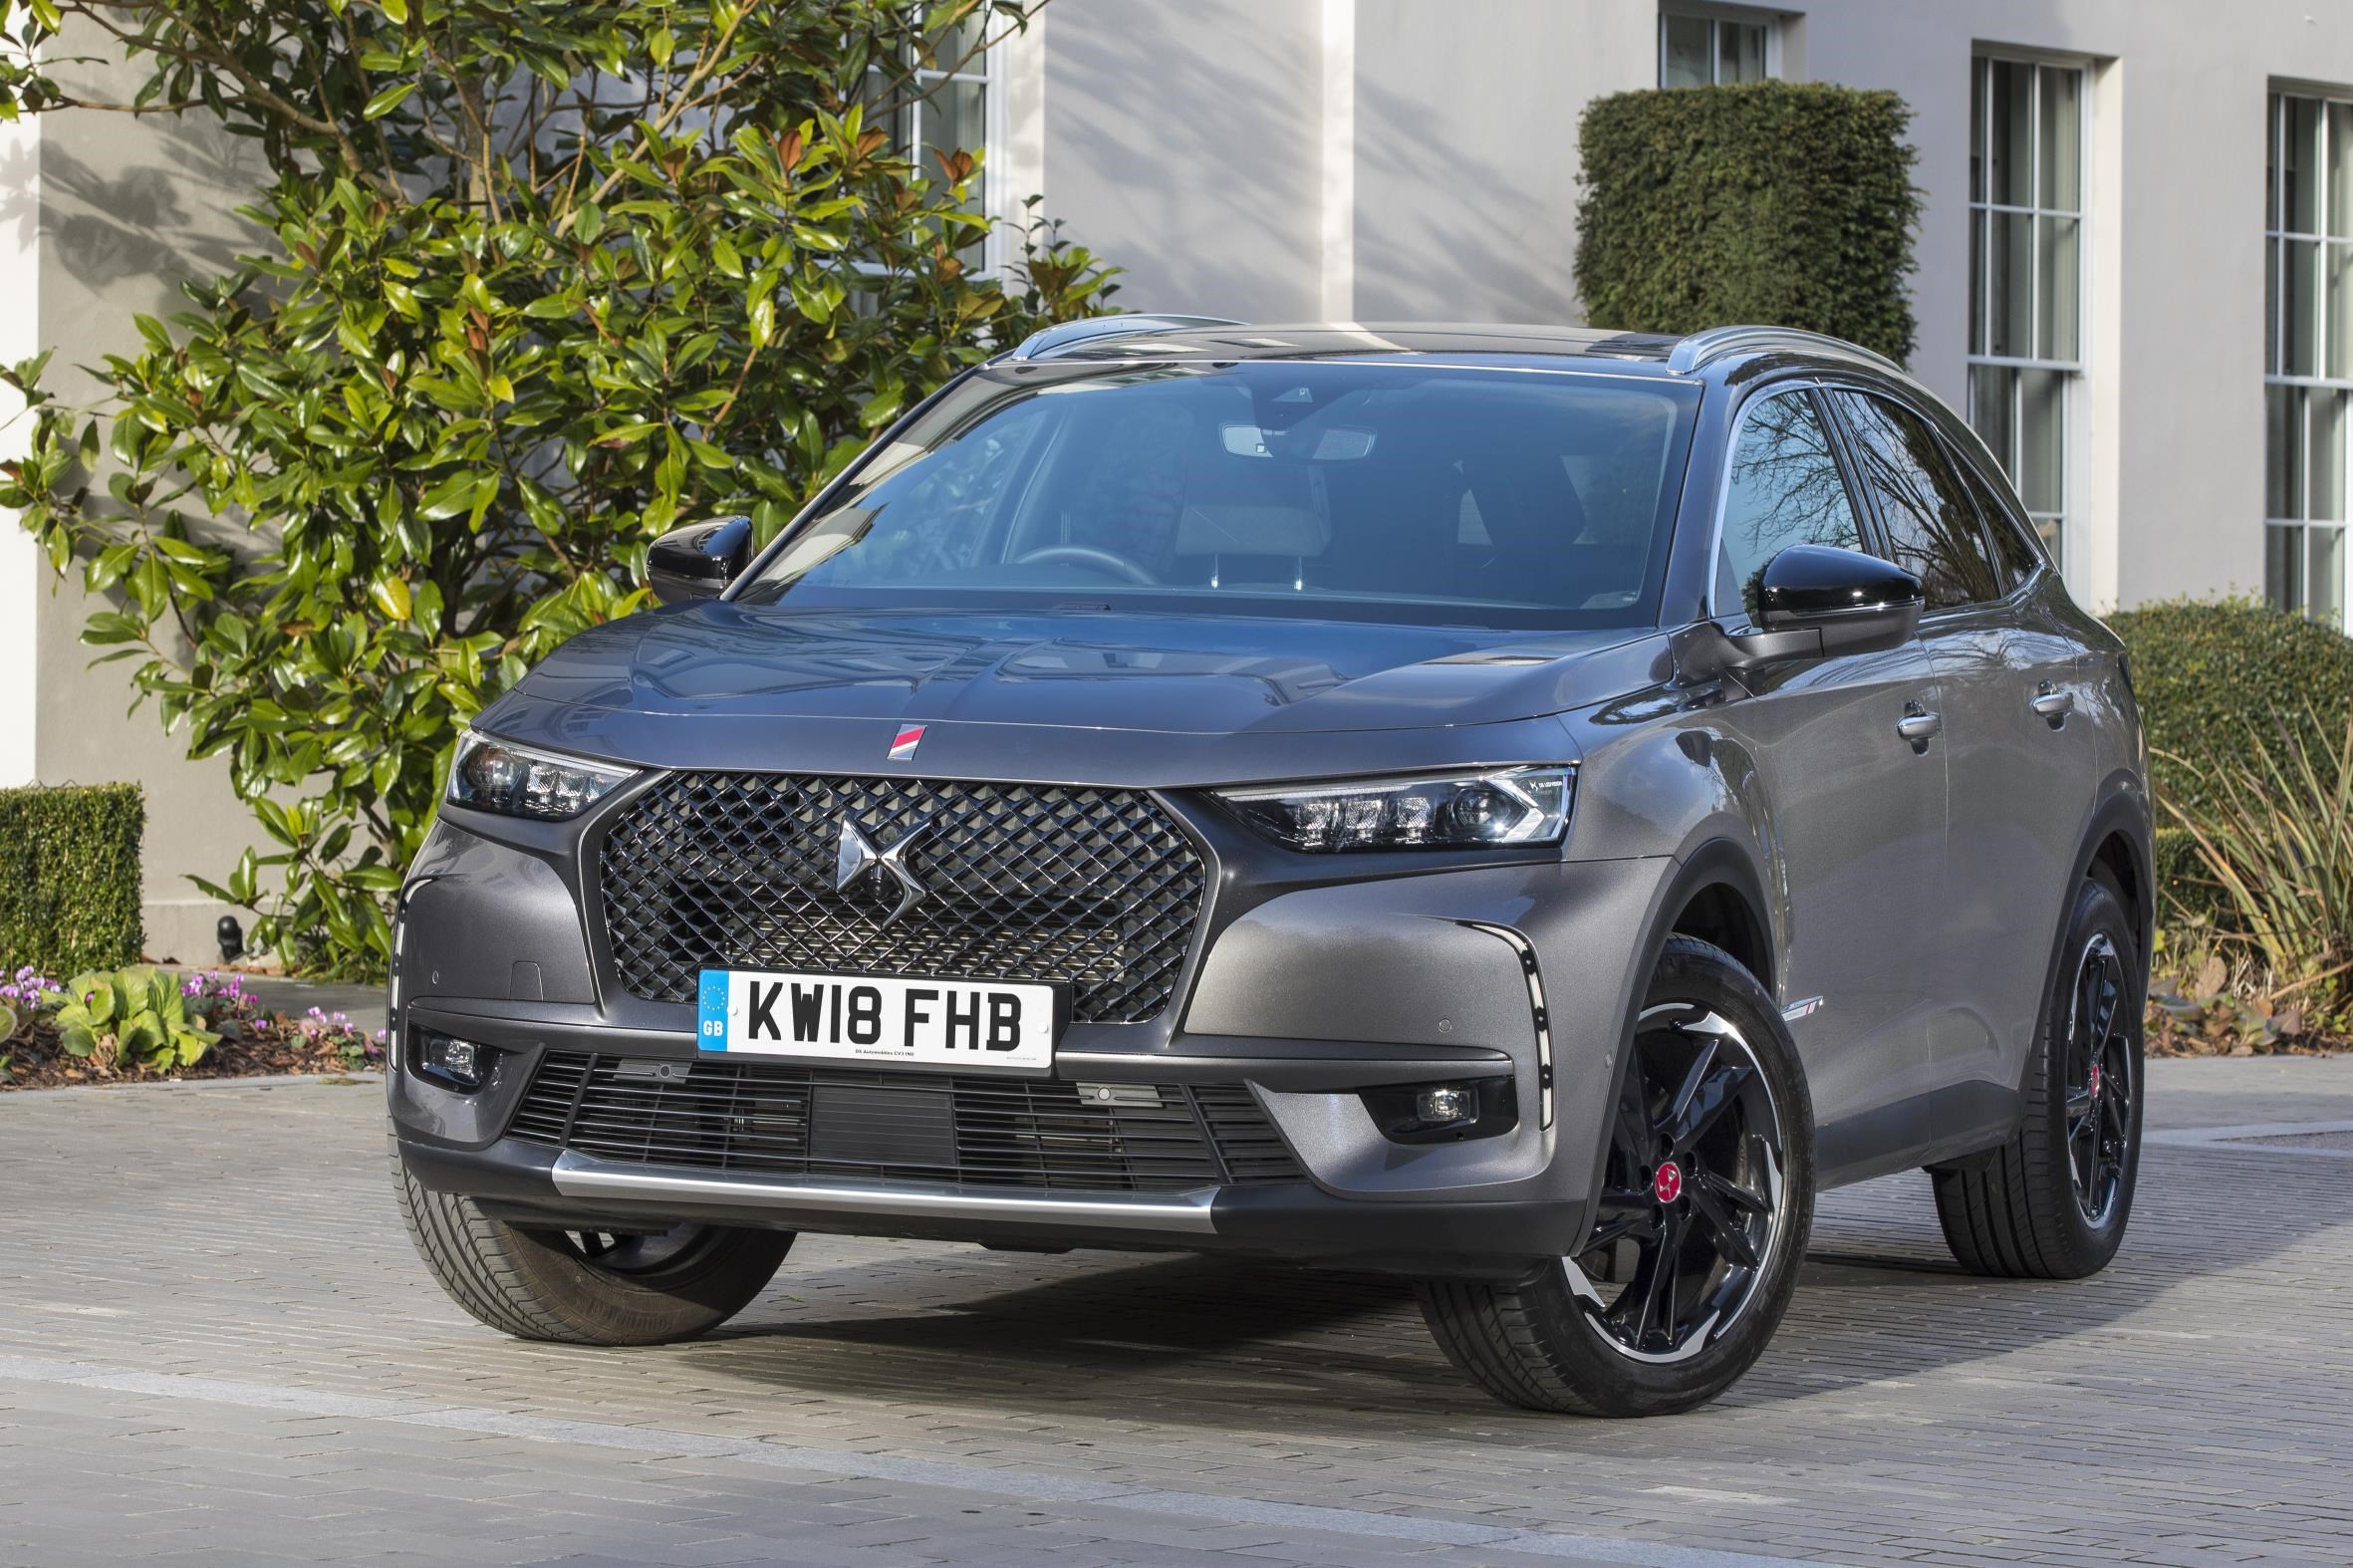 DS 7 Crossback full prices and specs revealed